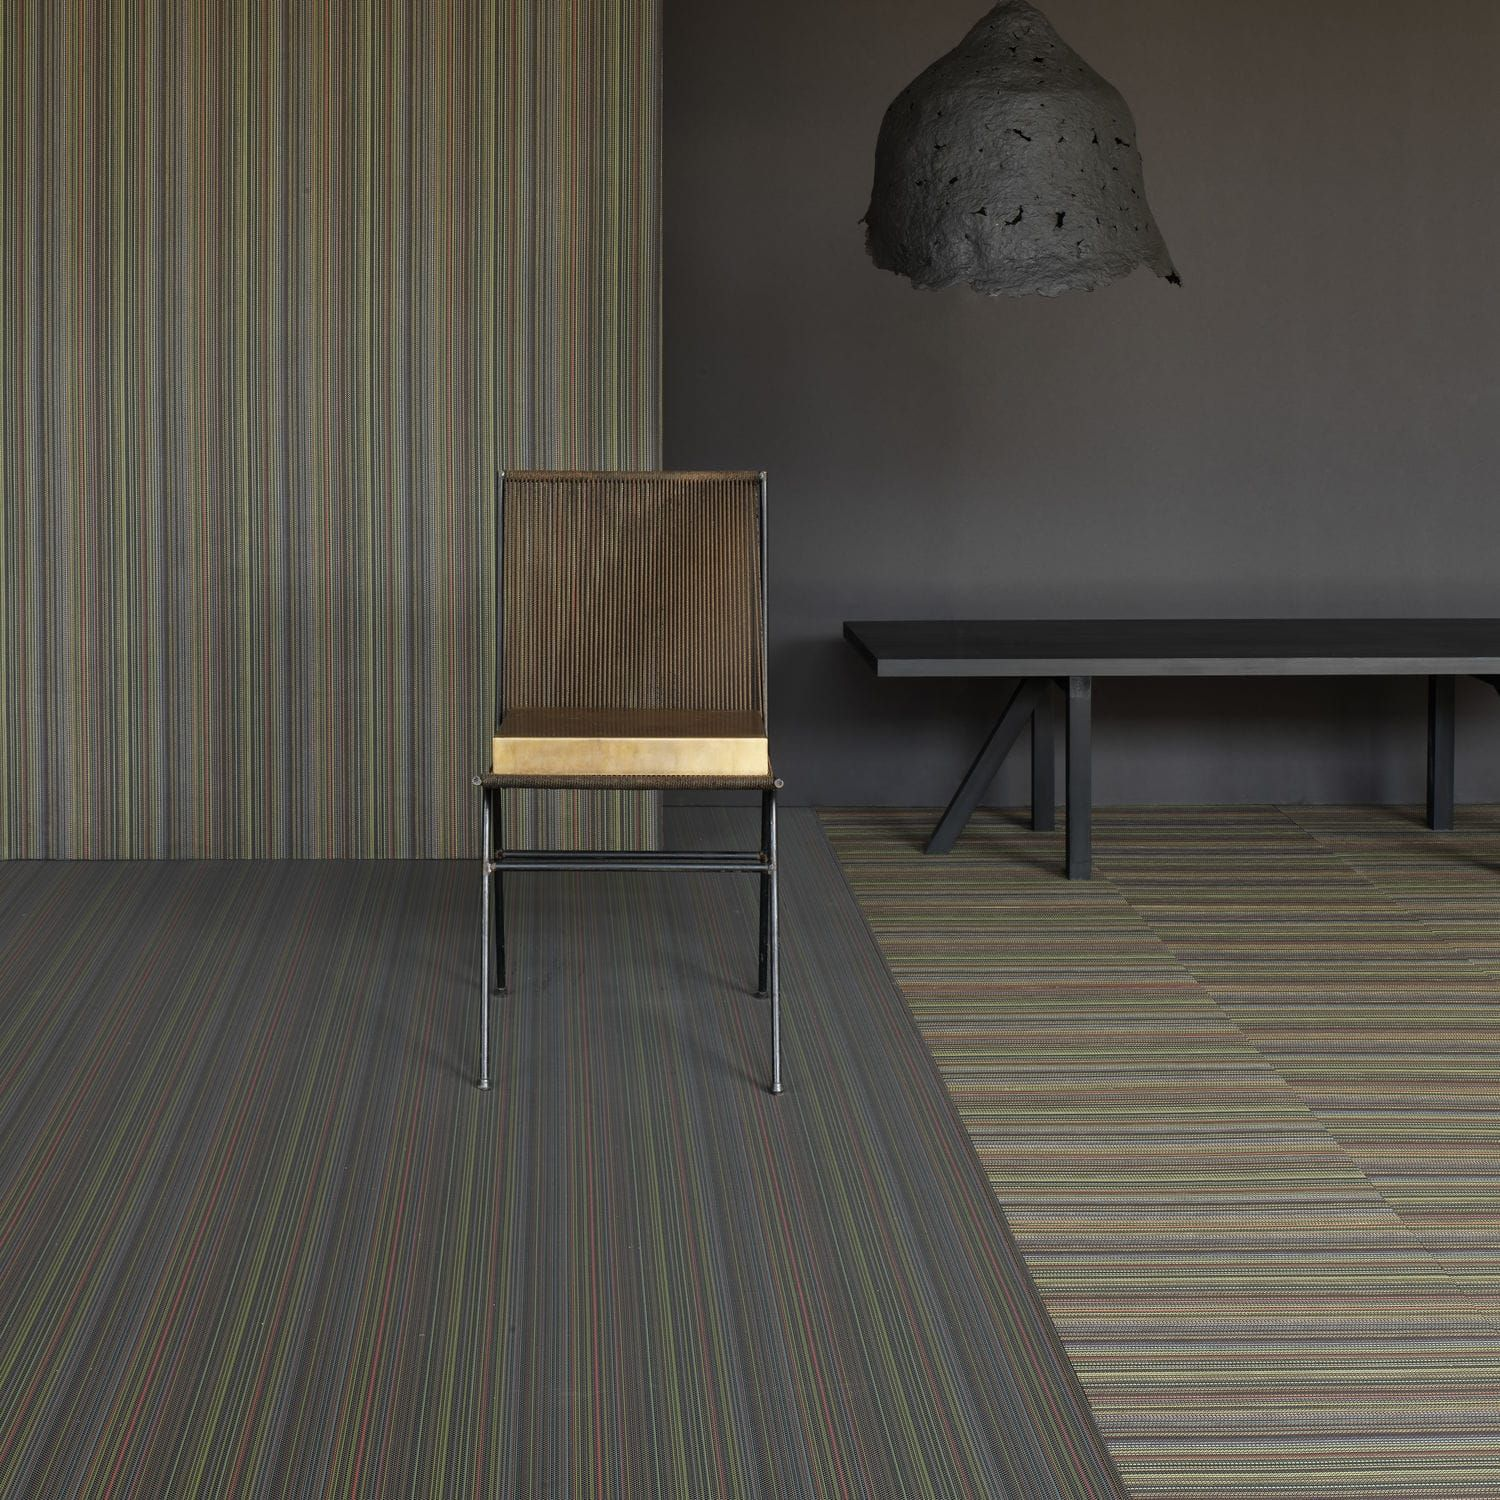 woven x ikat to in floor mat lane click xl mats lc chilewich crawford product large enlarge floors main view